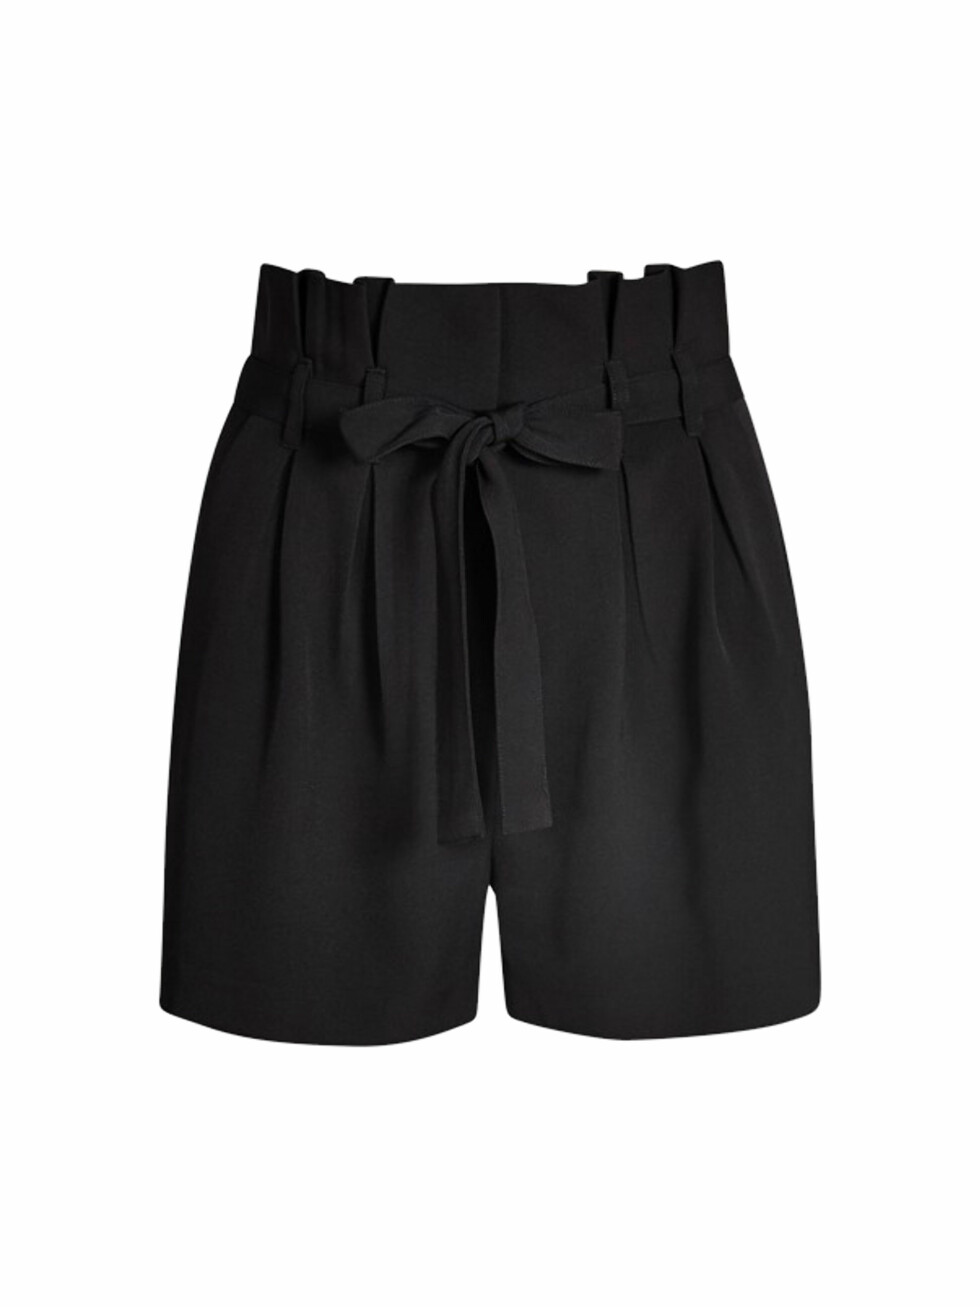 <strong>Shorts fra Bik Bok |250,-| https:</strong>//bikbok.com/no/p/shorts/amy-shorts/7217710_F990